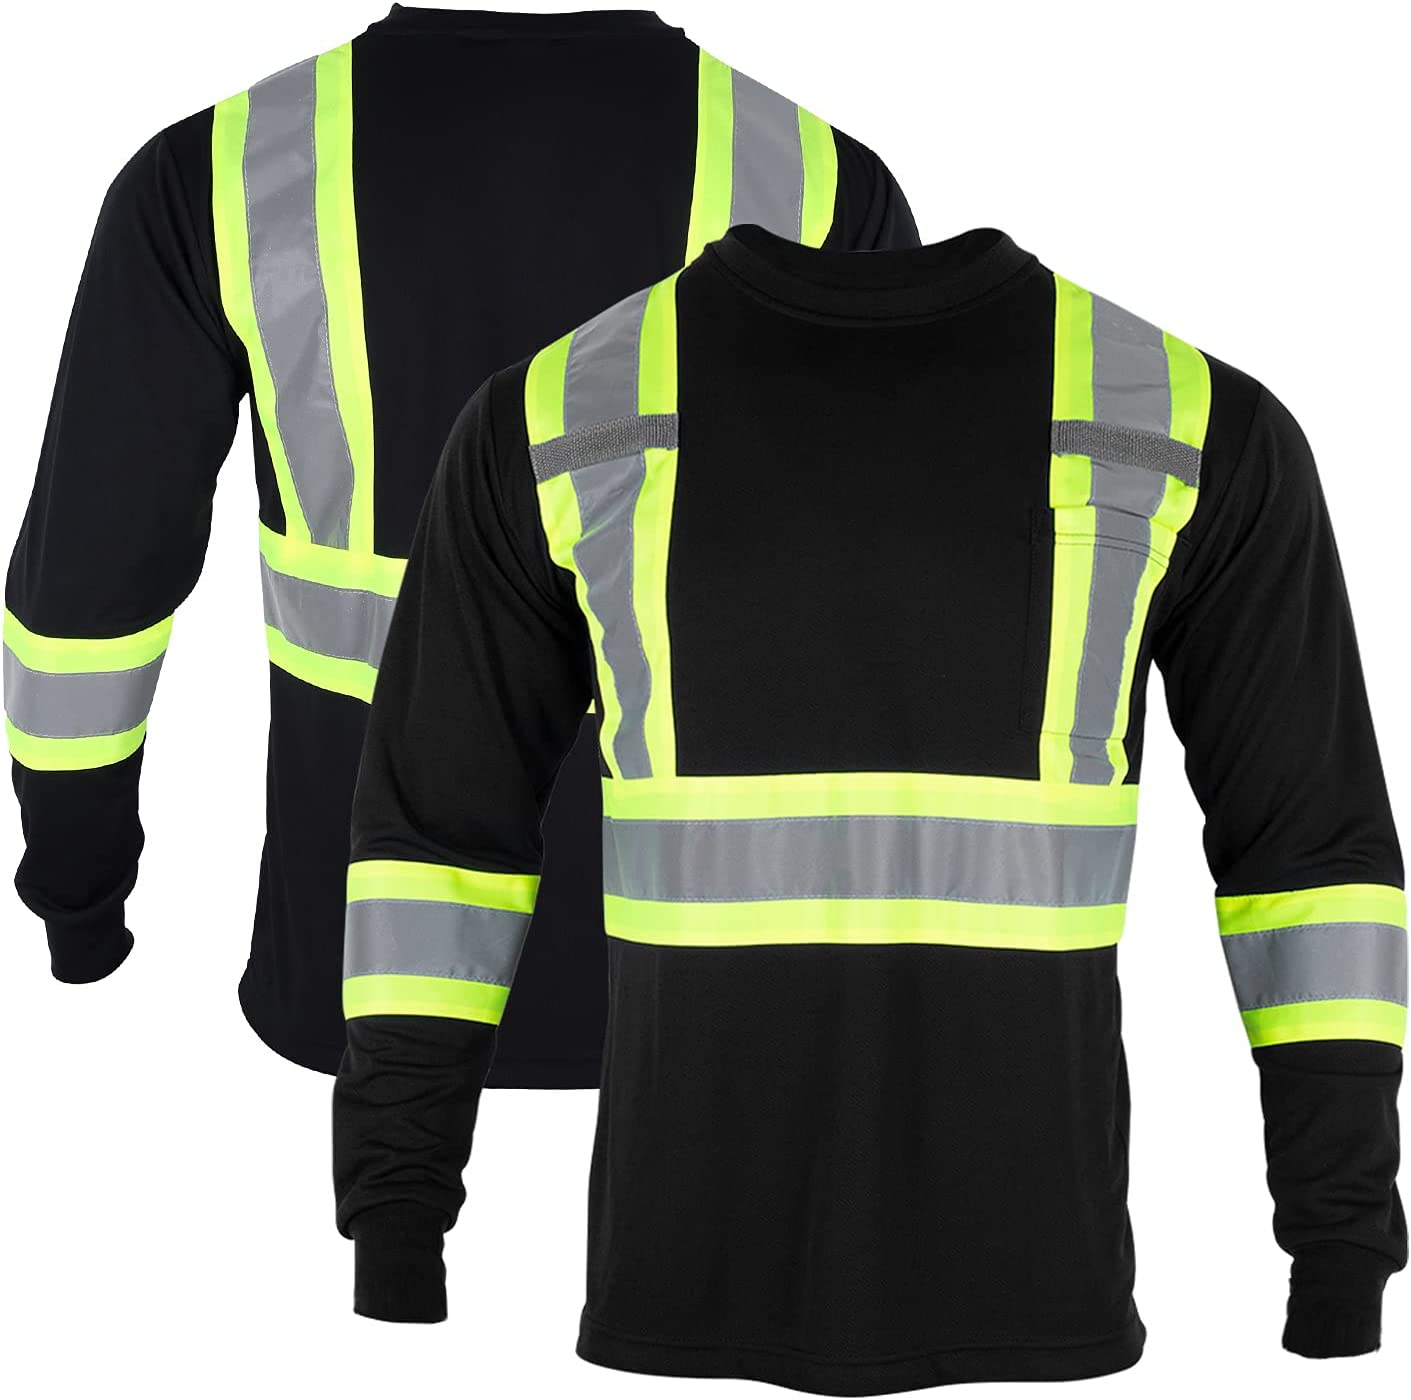 FONIRRA Long Sleeve Safety T Reflective Visibility Bl OFFicial Max 76% OFF High Shirt